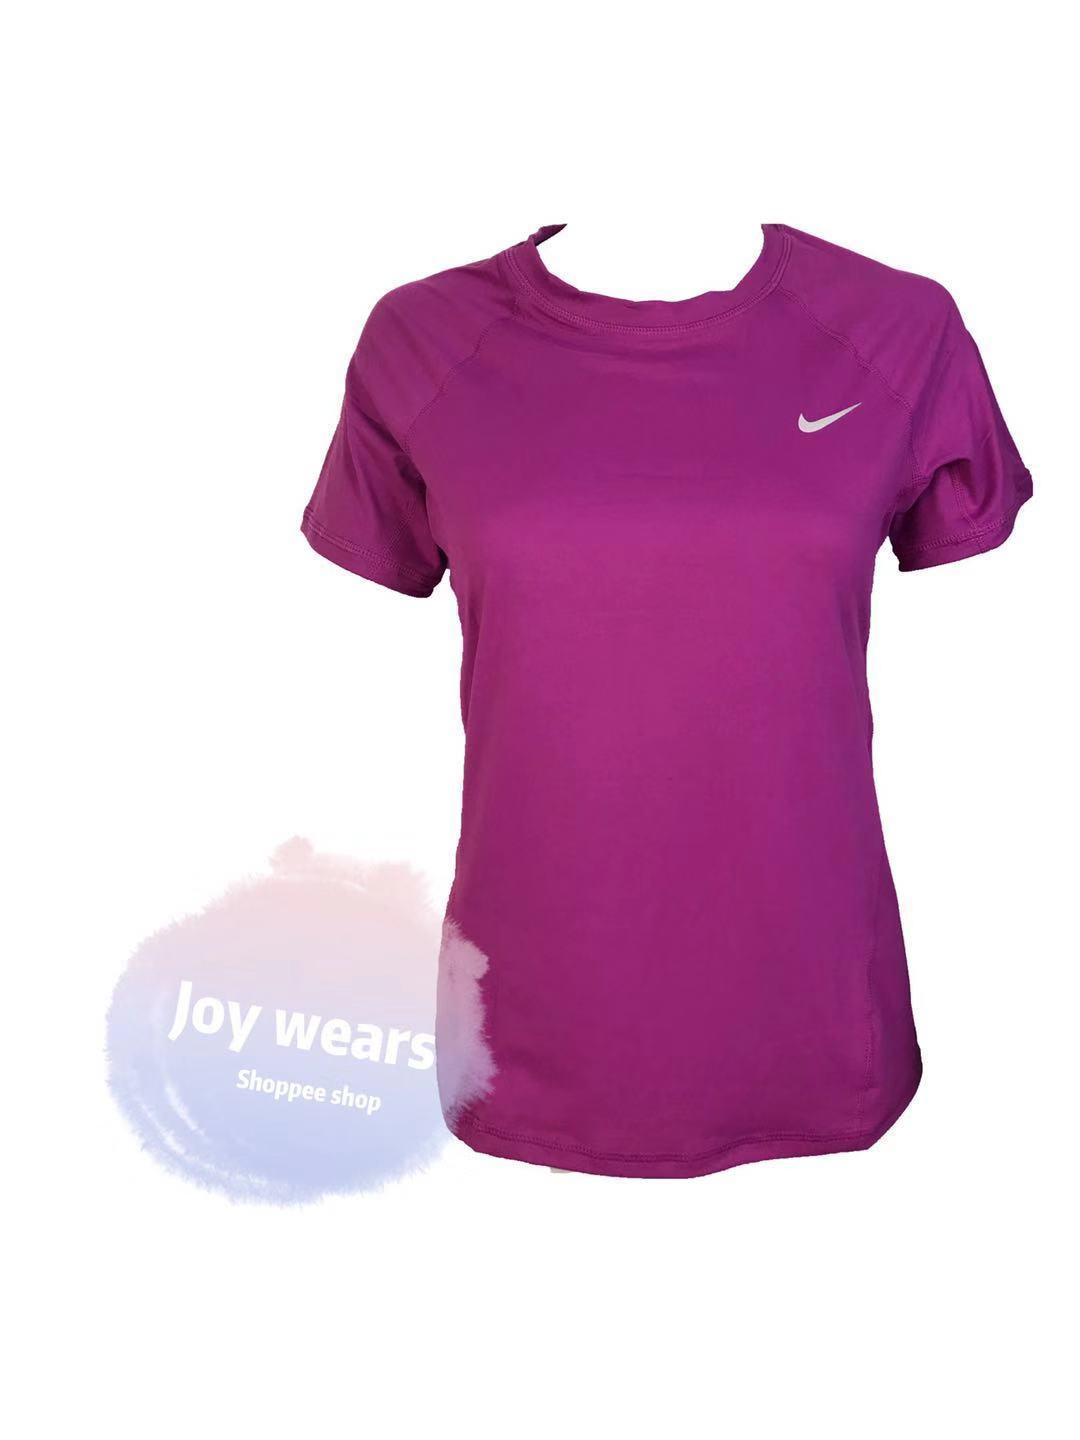 Nw.2808n Ike Short Sleeve Athletic Dry Fit Shirt For Women By Joy Wears.